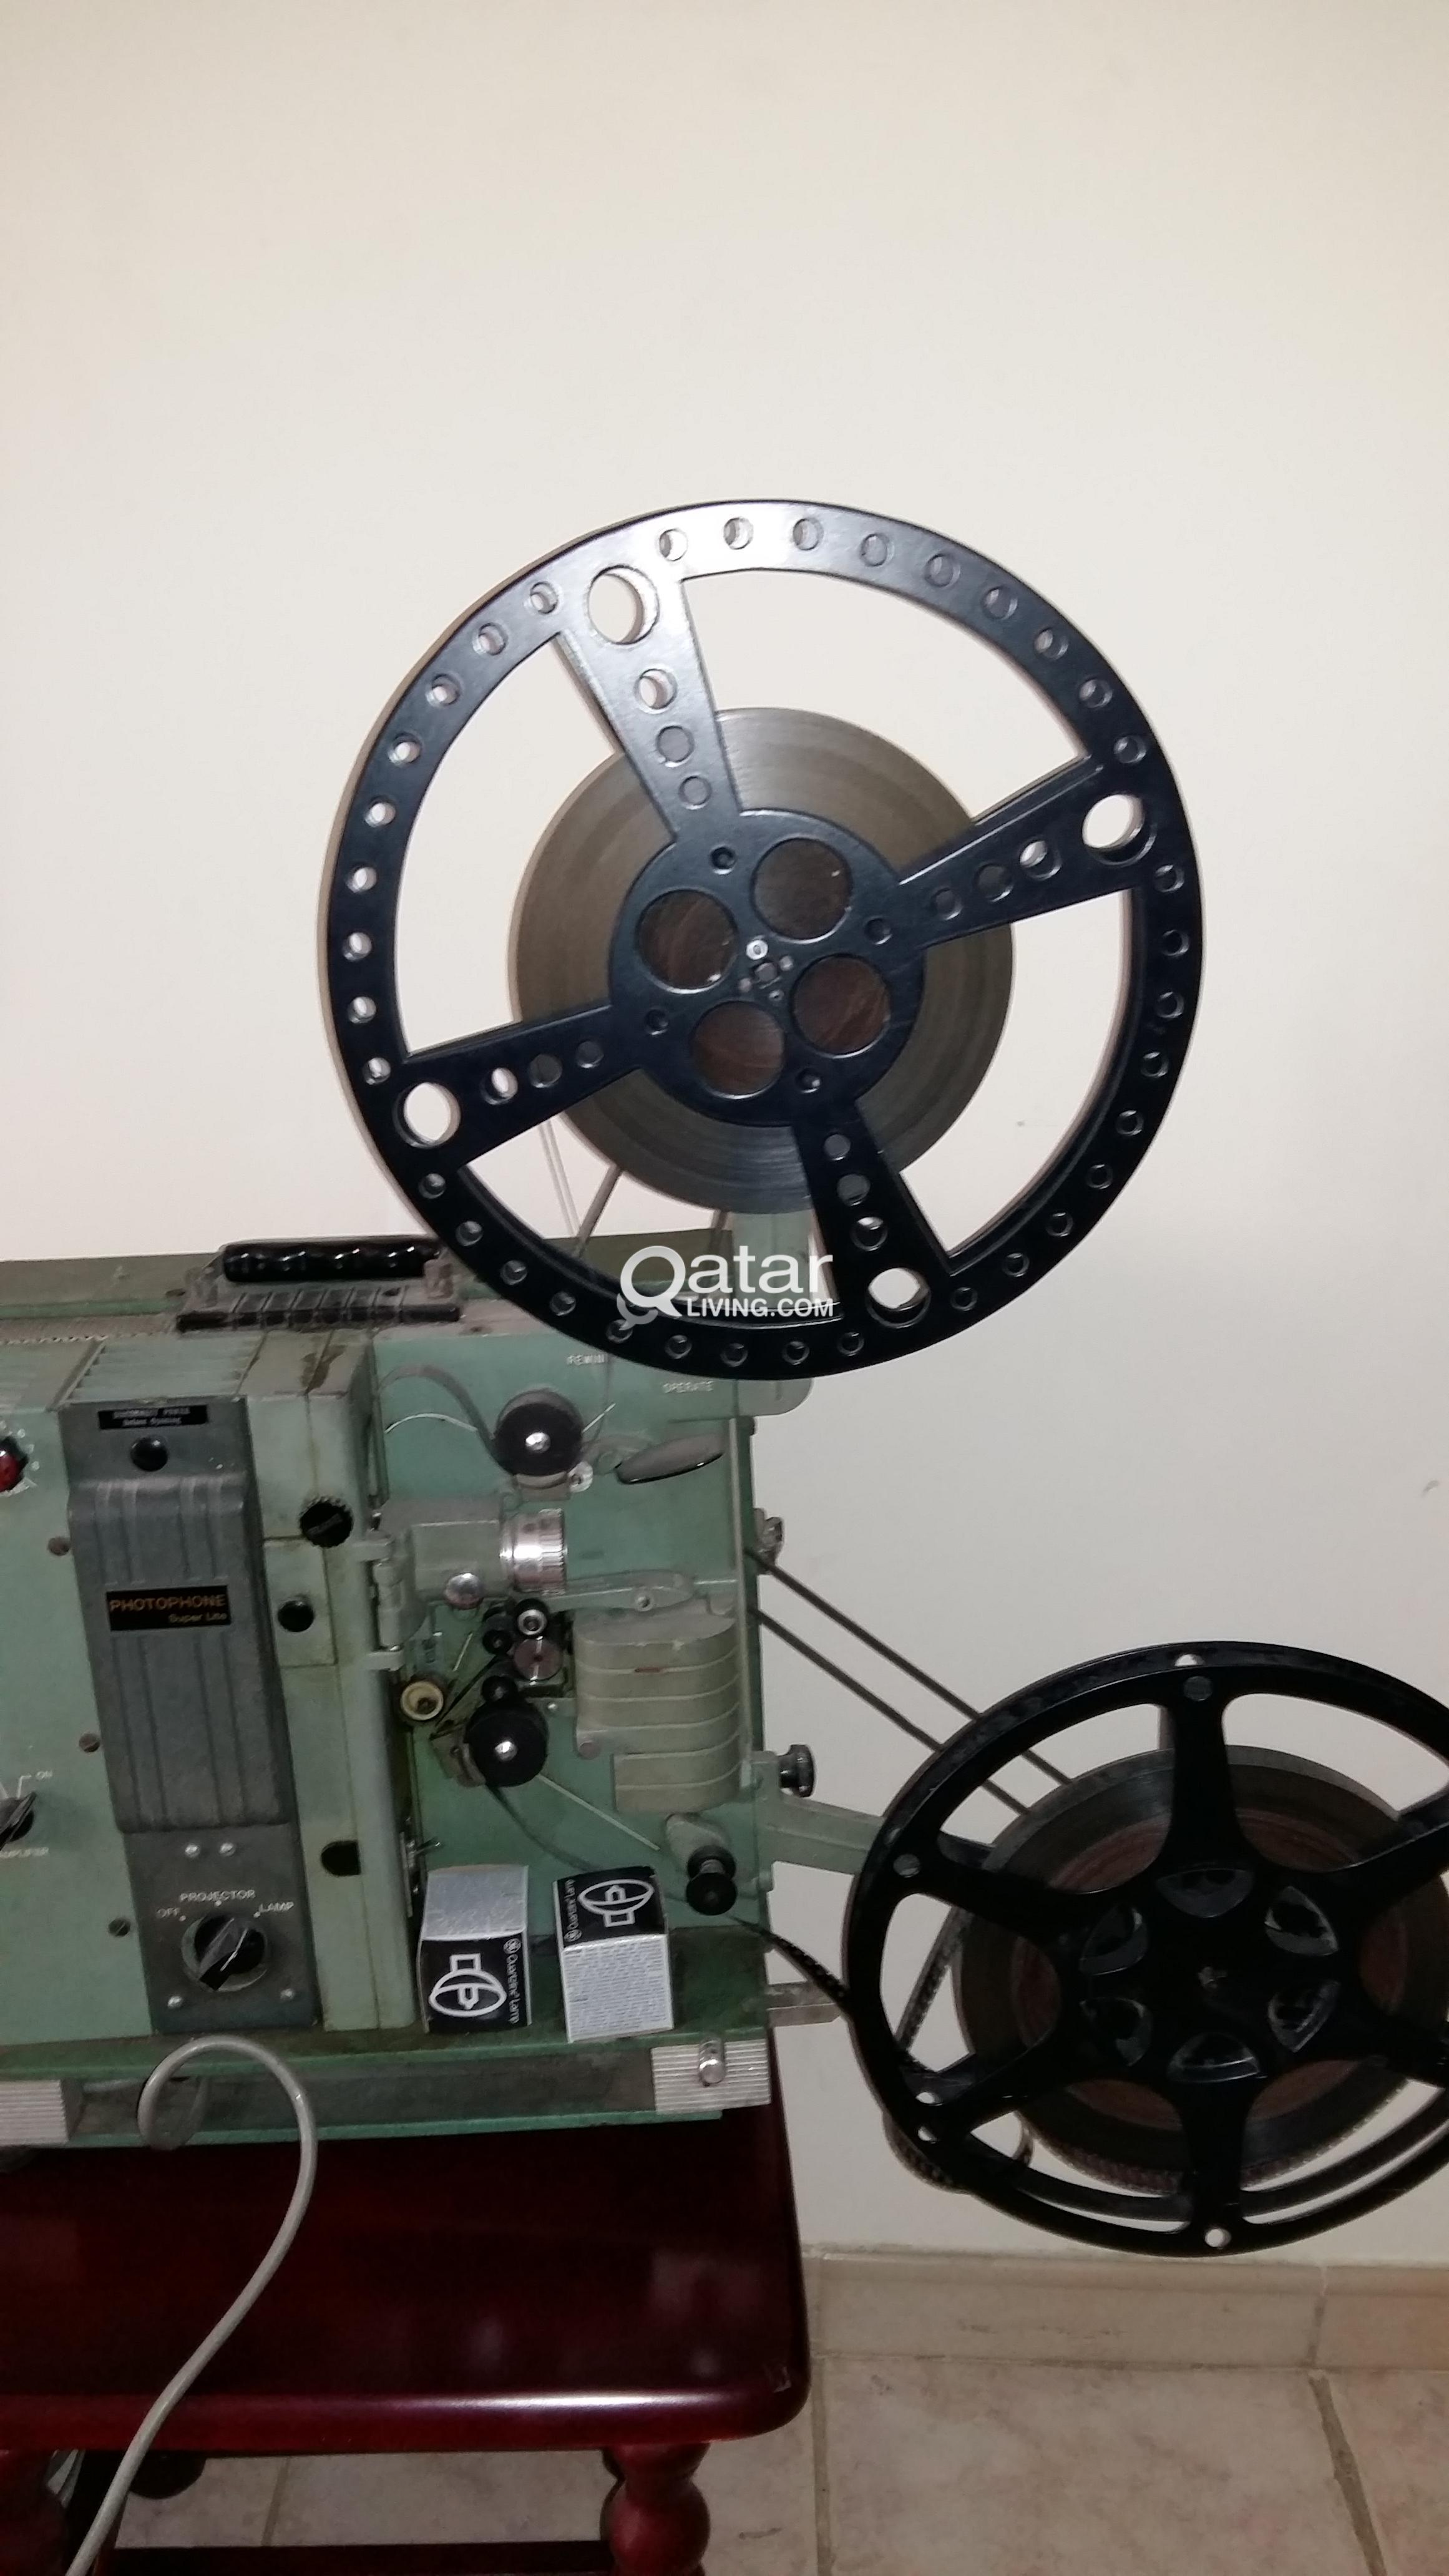 16mm Antique Projector | Qatar Living